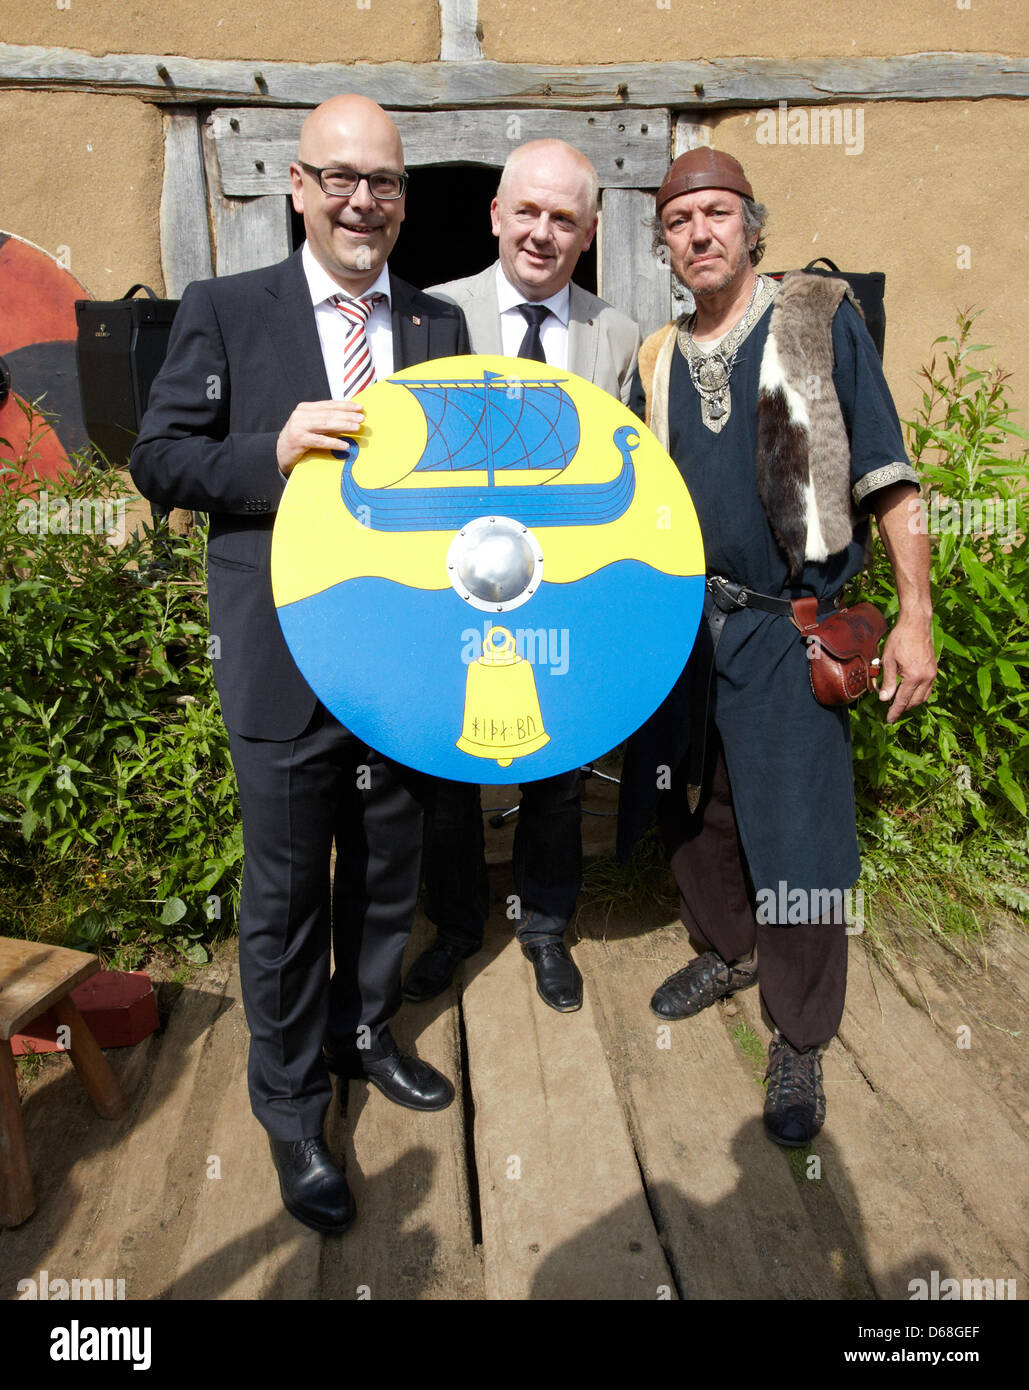 Premiere Thorsten Albig (L-R) receives a shield from mayor Ralf Feddersen and Thomas Mauler during the event 'Kurs - Stock Image